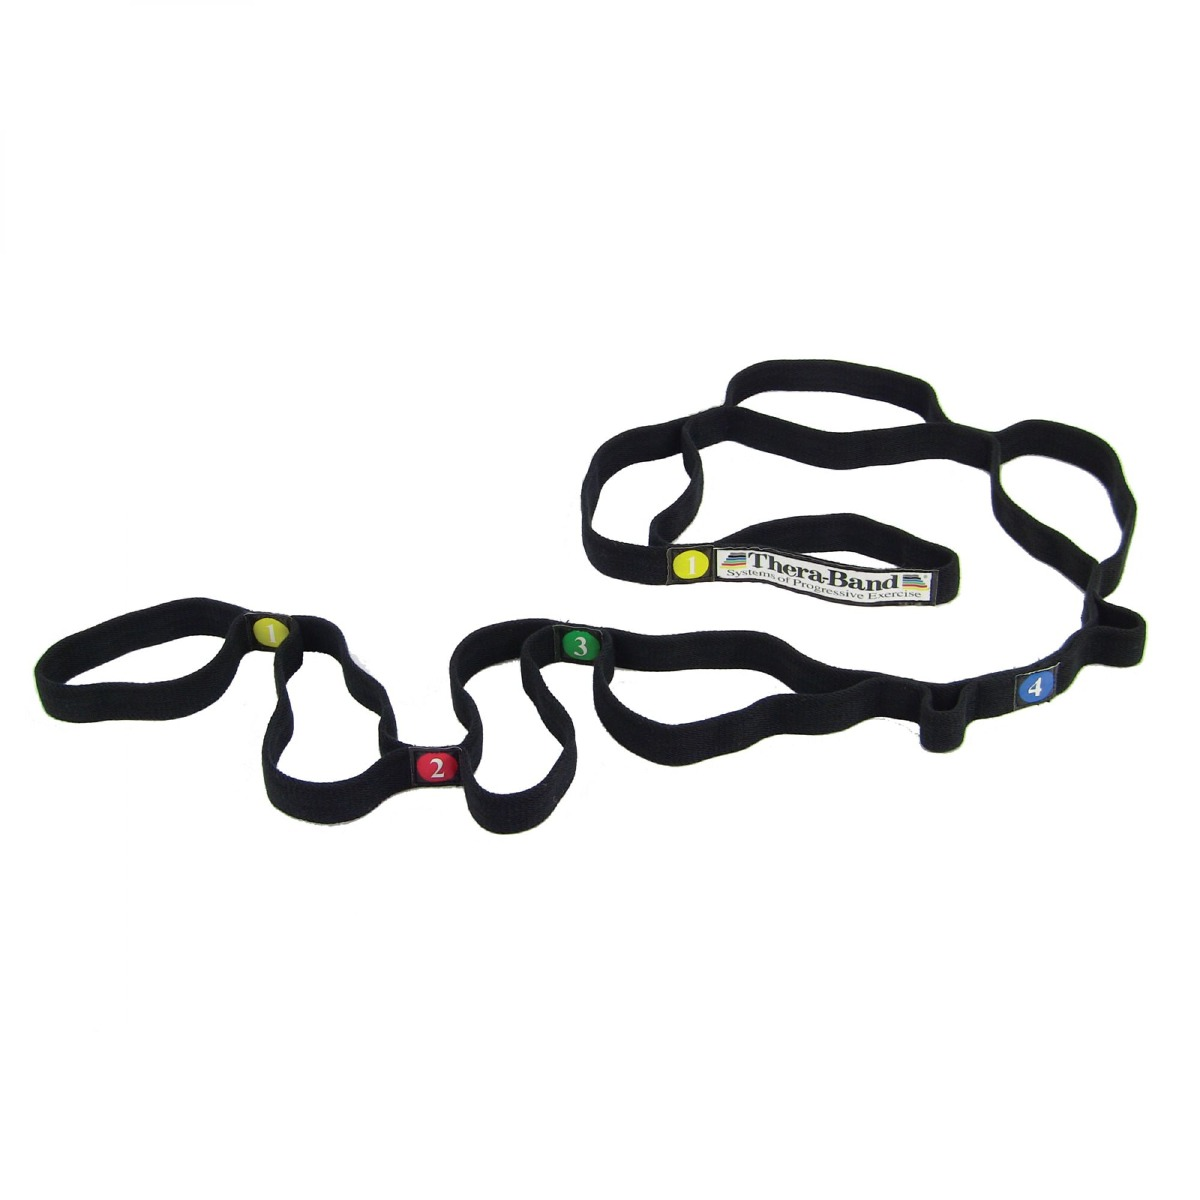 Theraband Stretching Strap